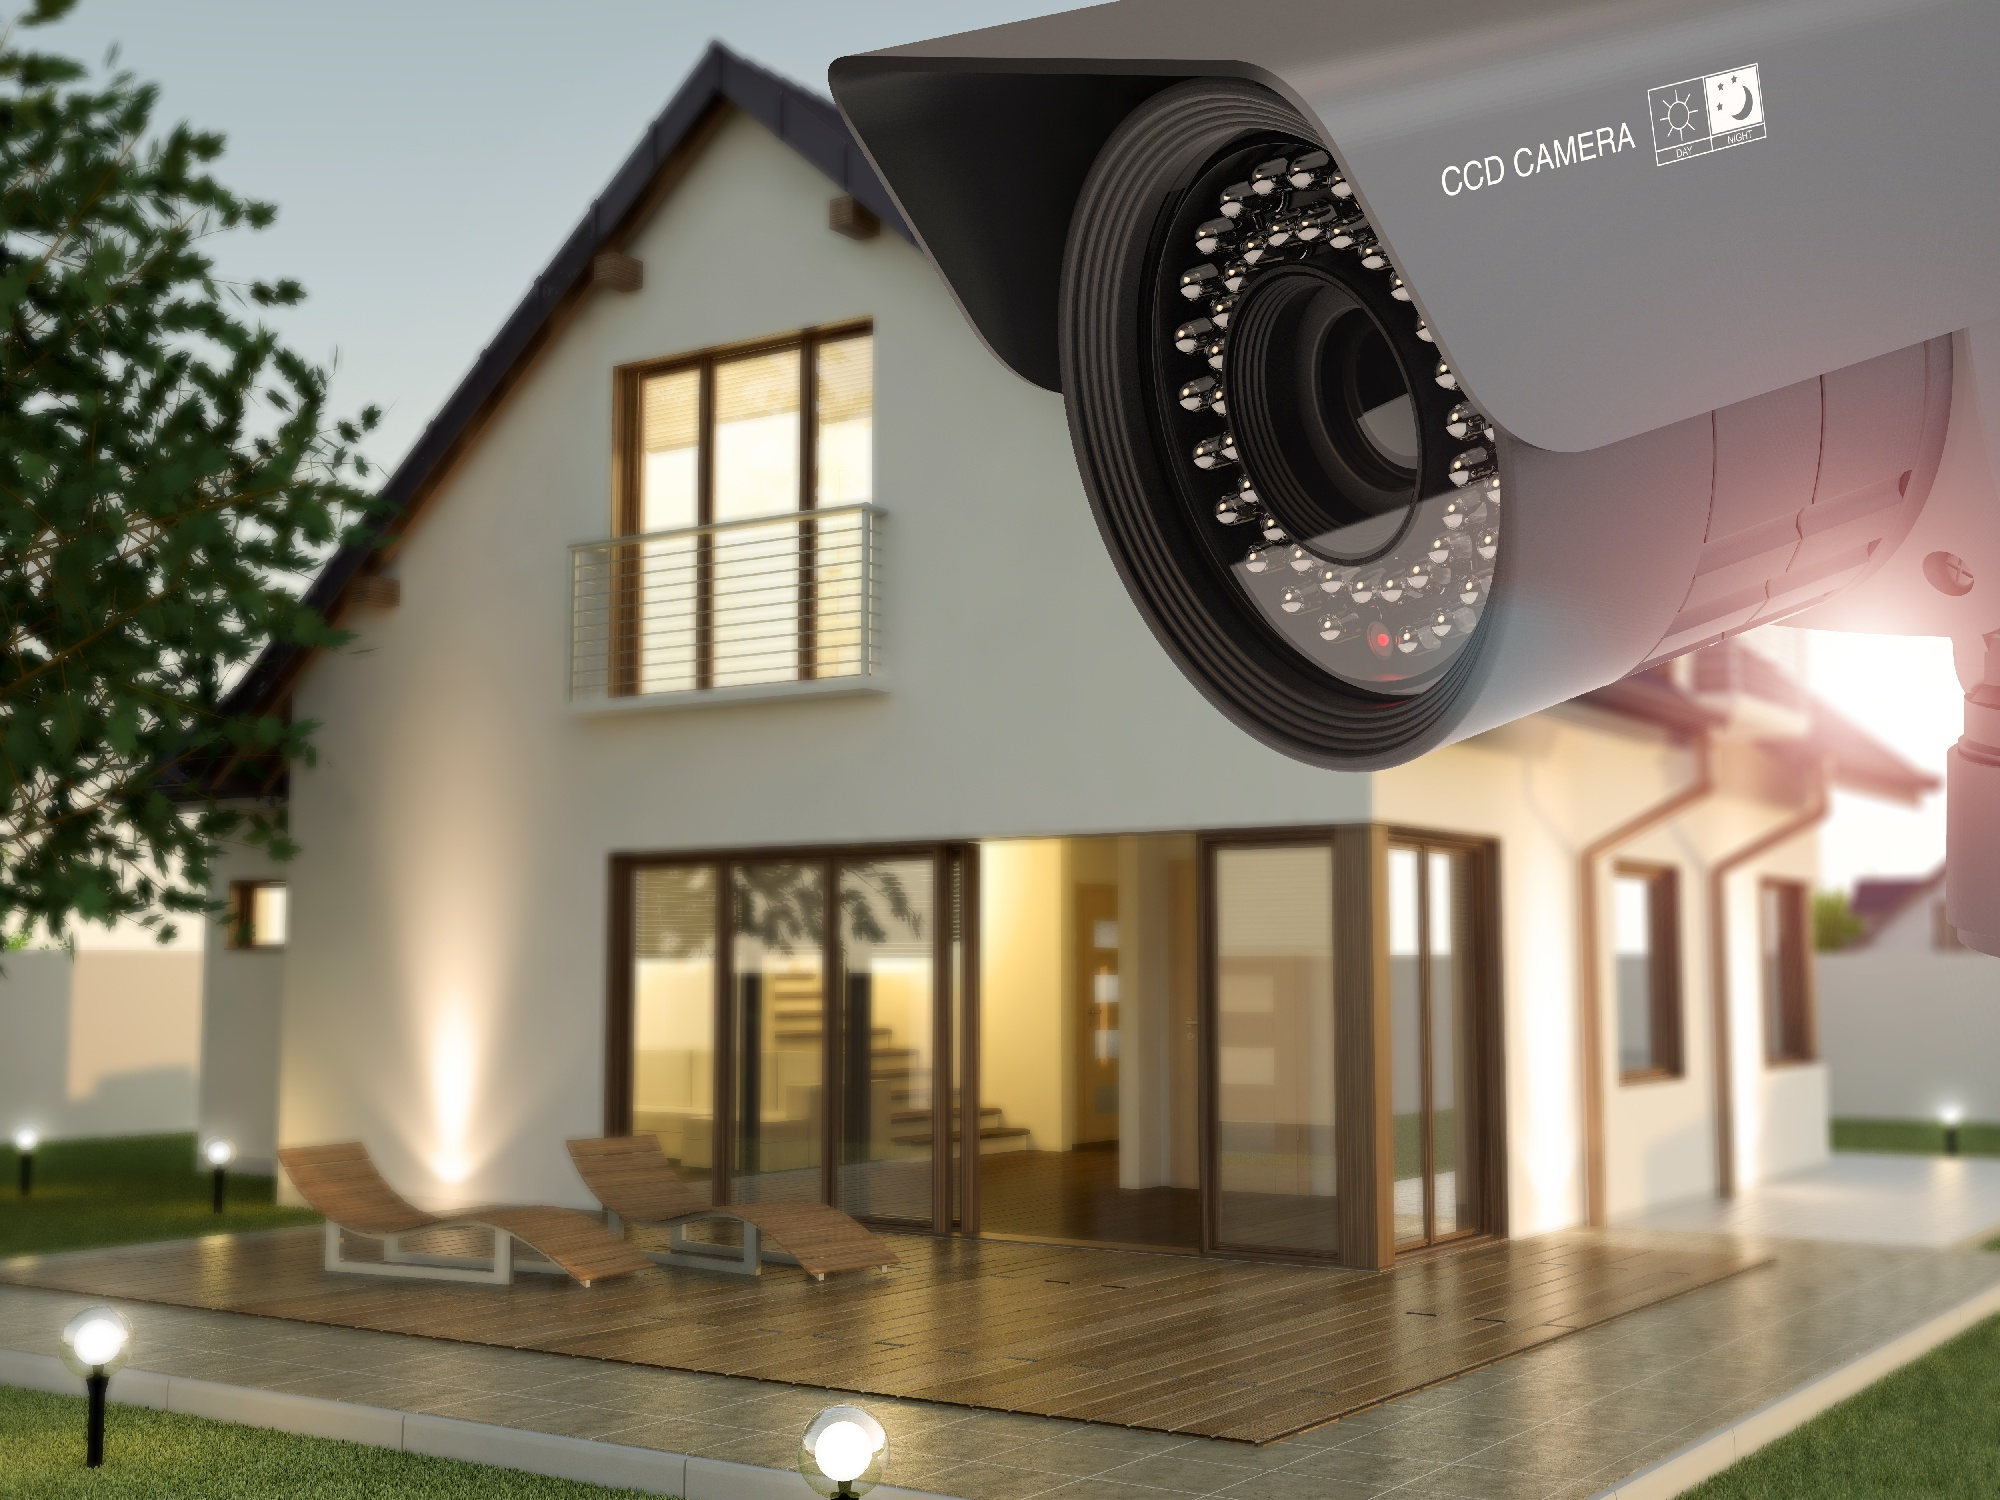 How Should HOAs Handle Security Cameras?